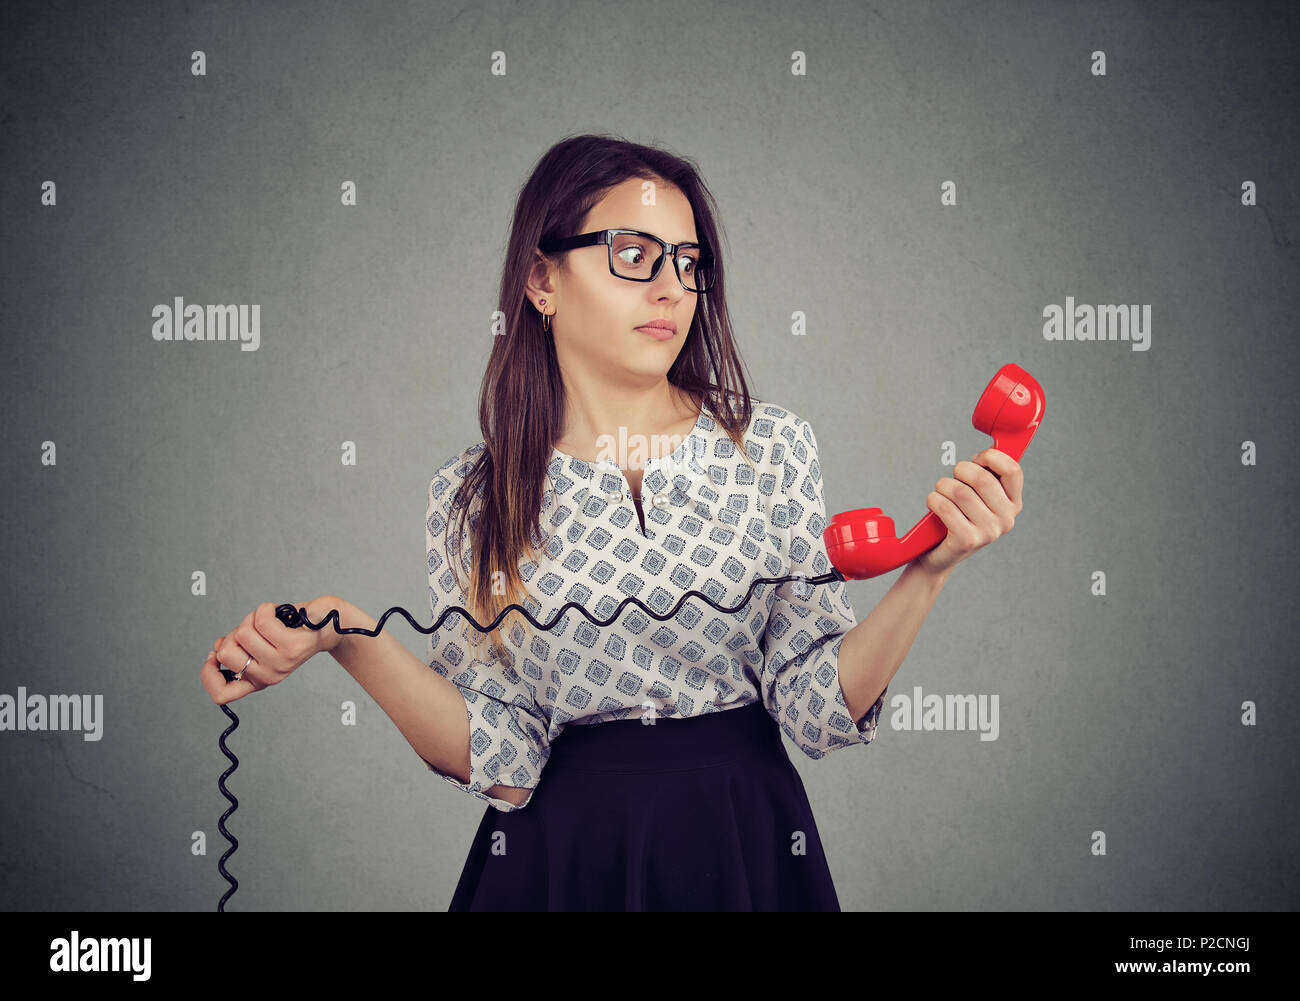 Confused young woman with bad news on the phone - Stock Image